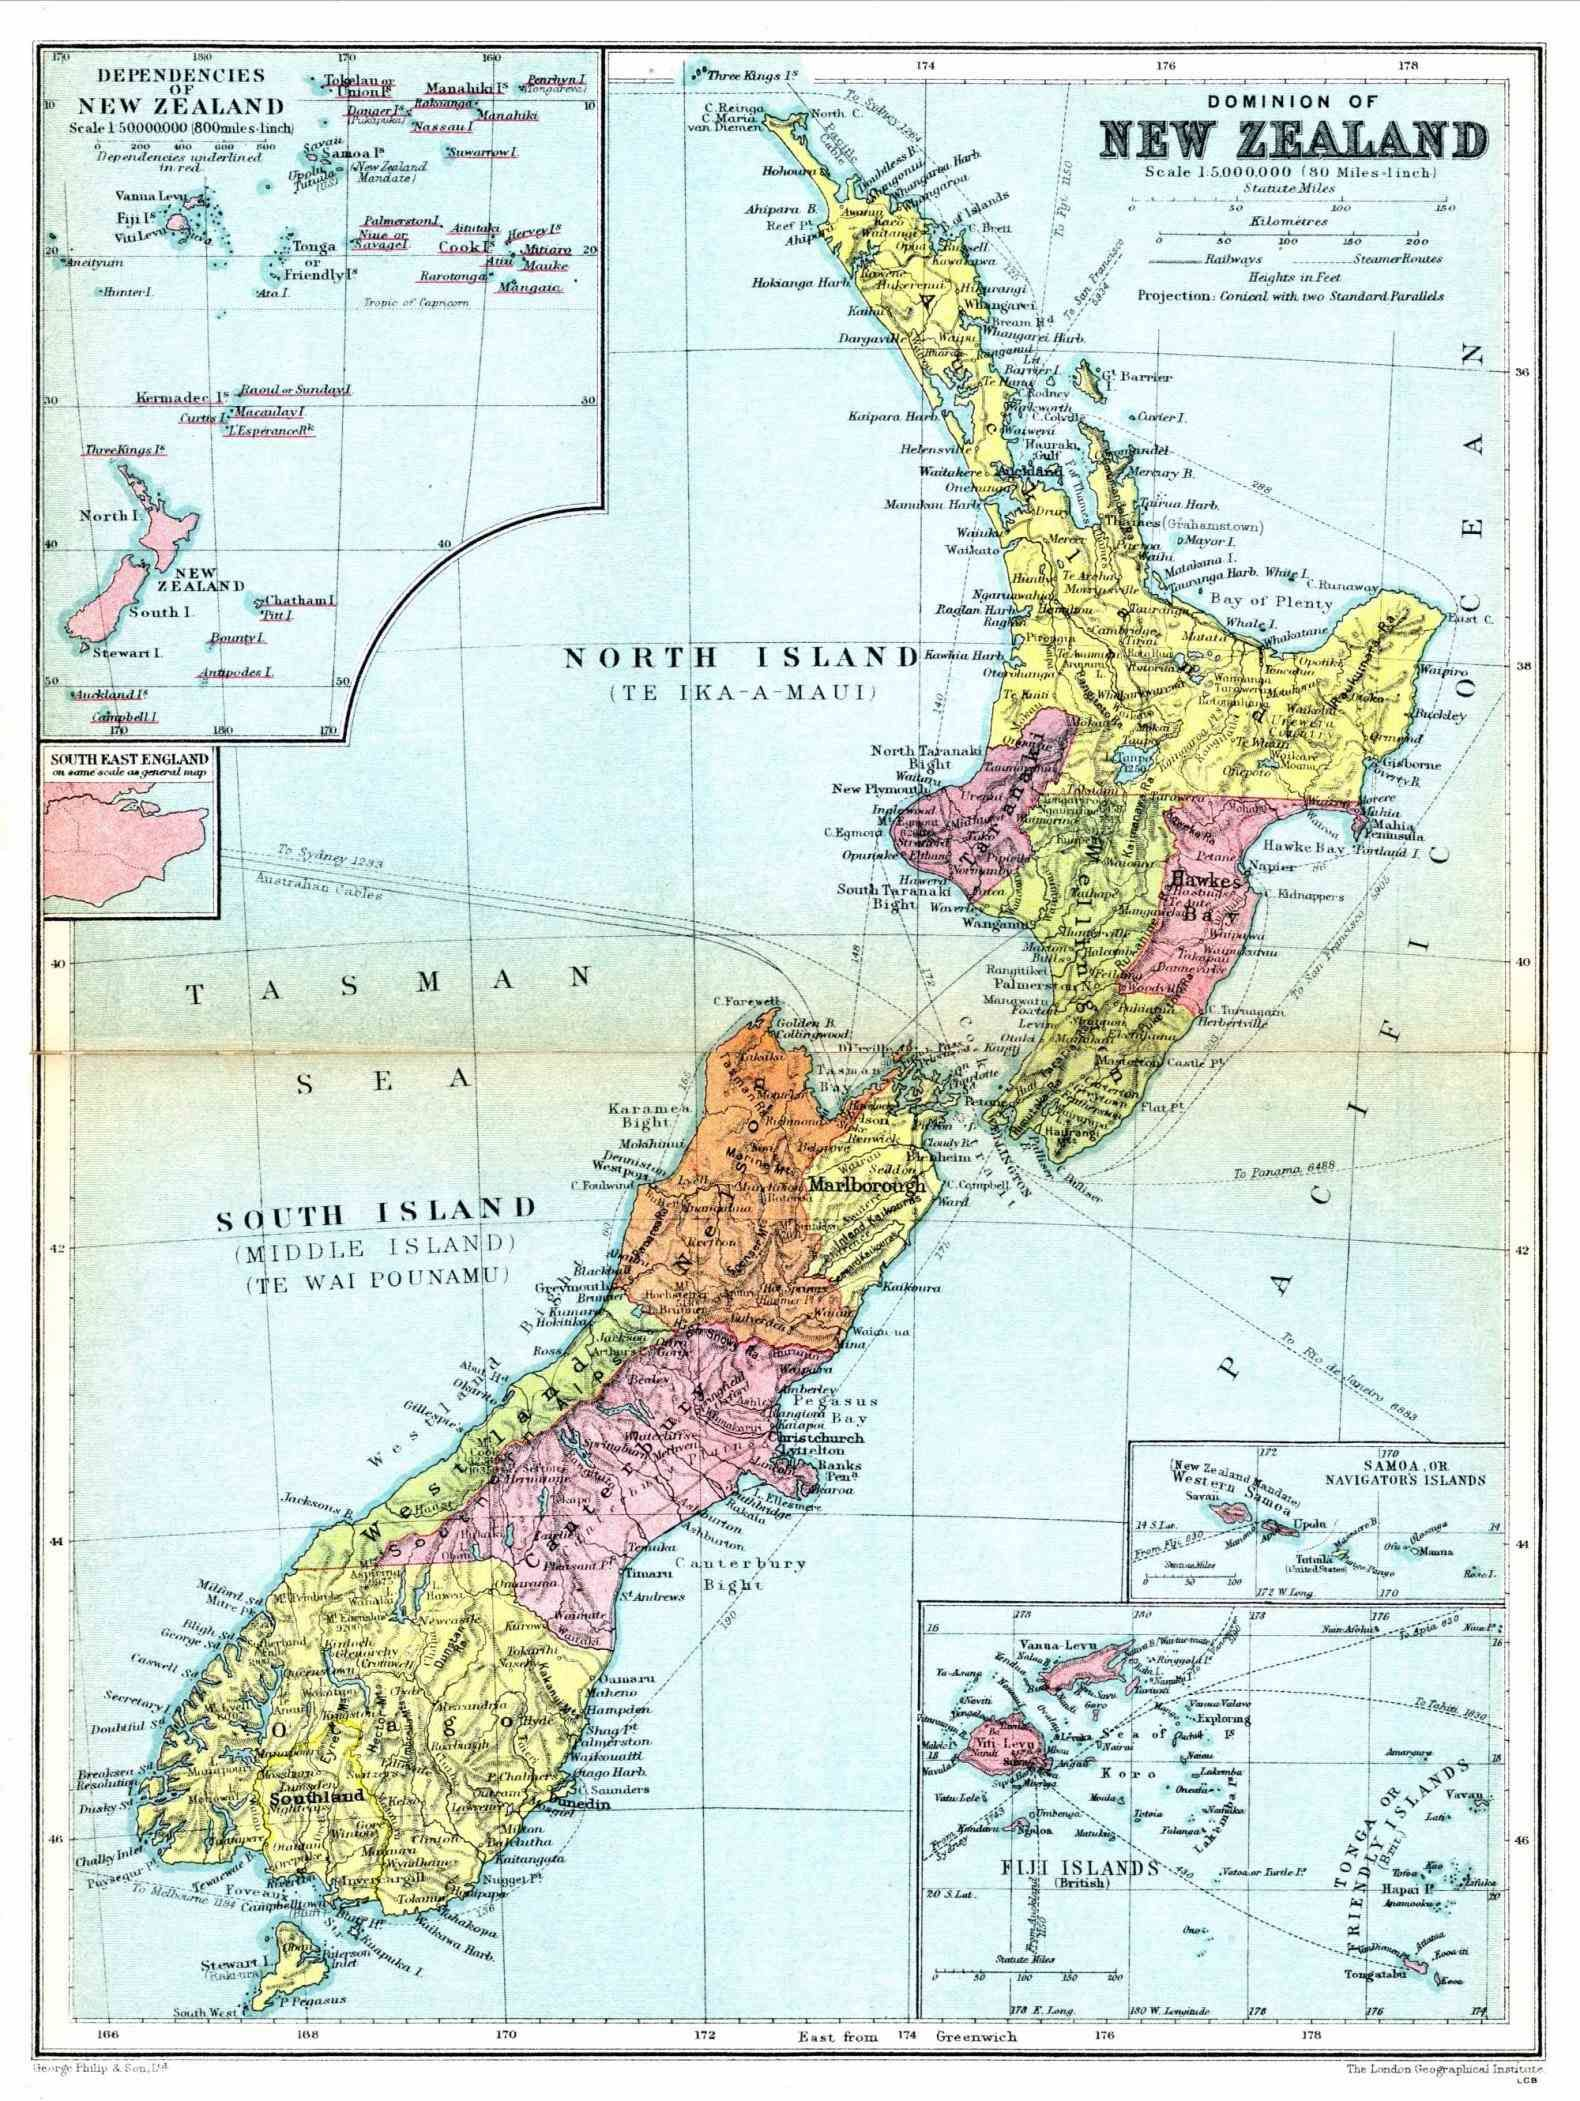 Zealand Map Formats Premade S Threatened Environment Underdog Nz - Where is new zealand located